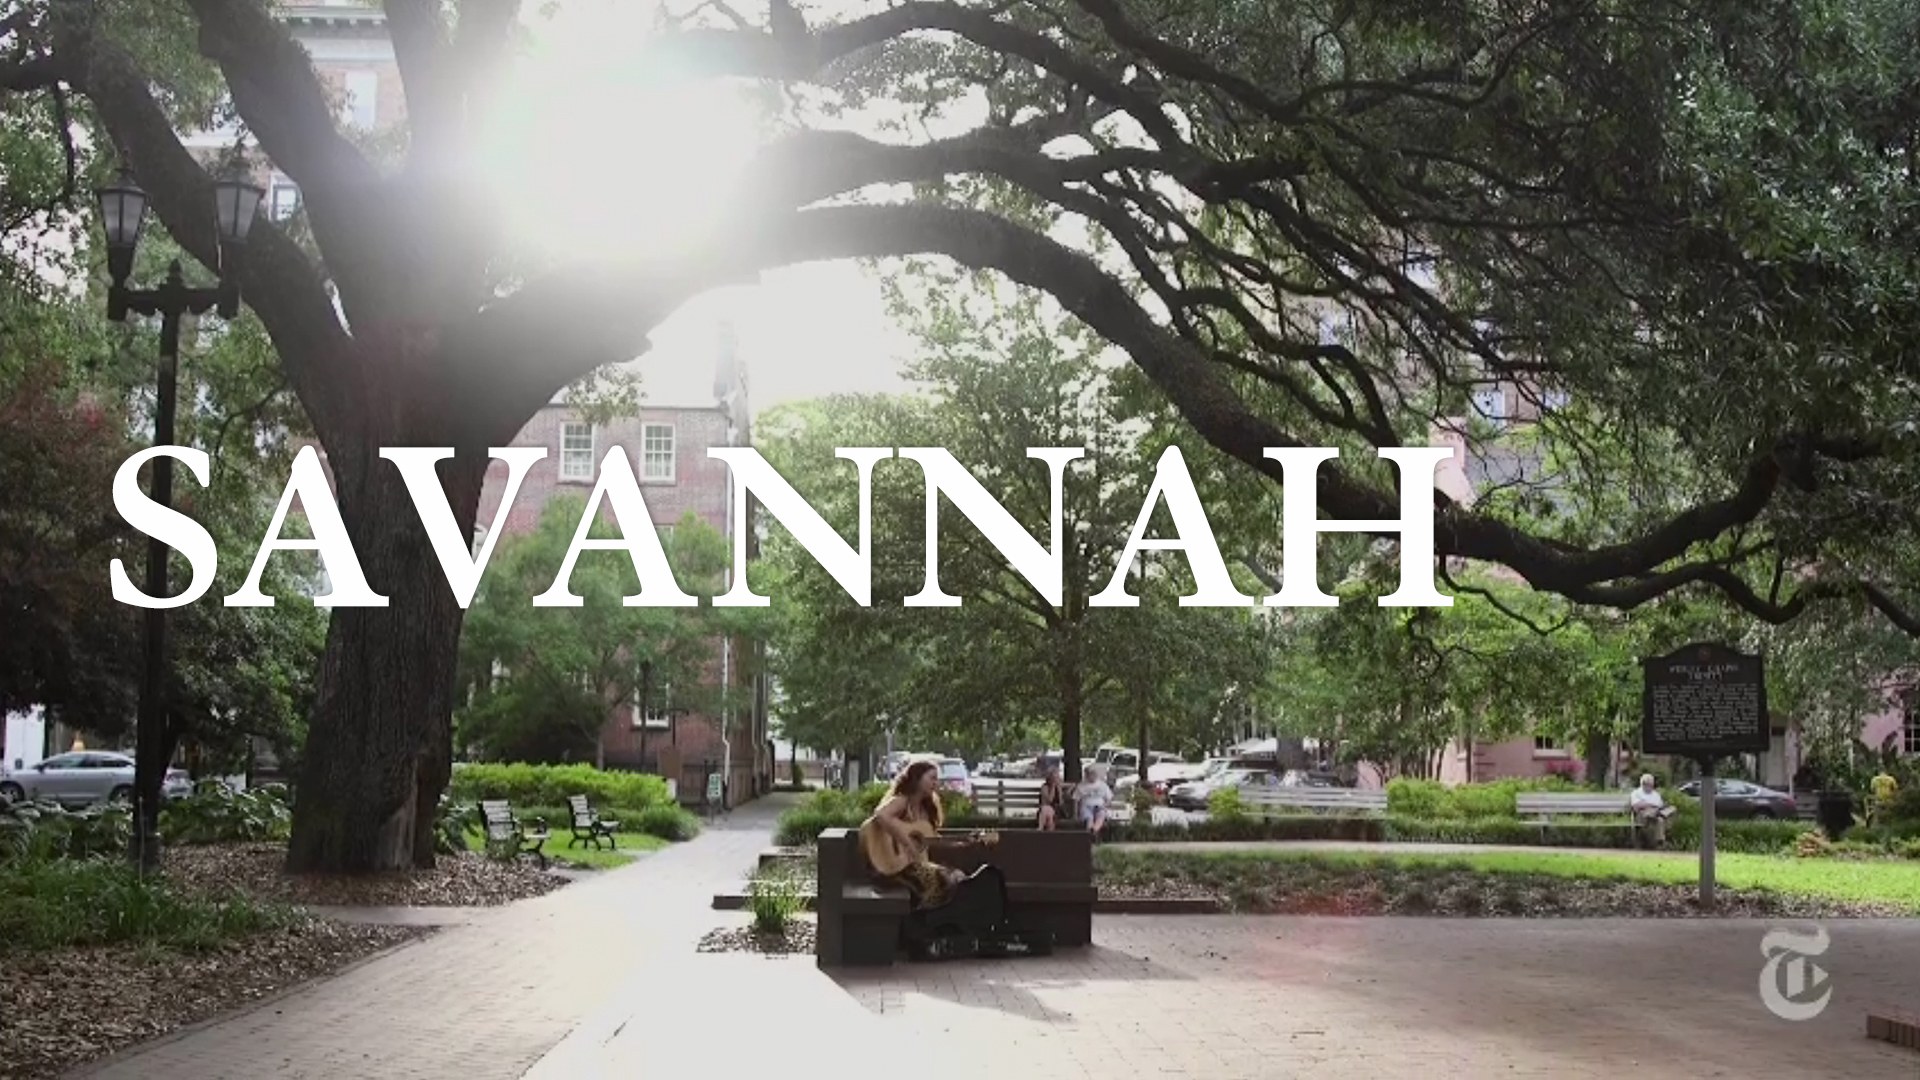 36 HOURS: SAVANNAH